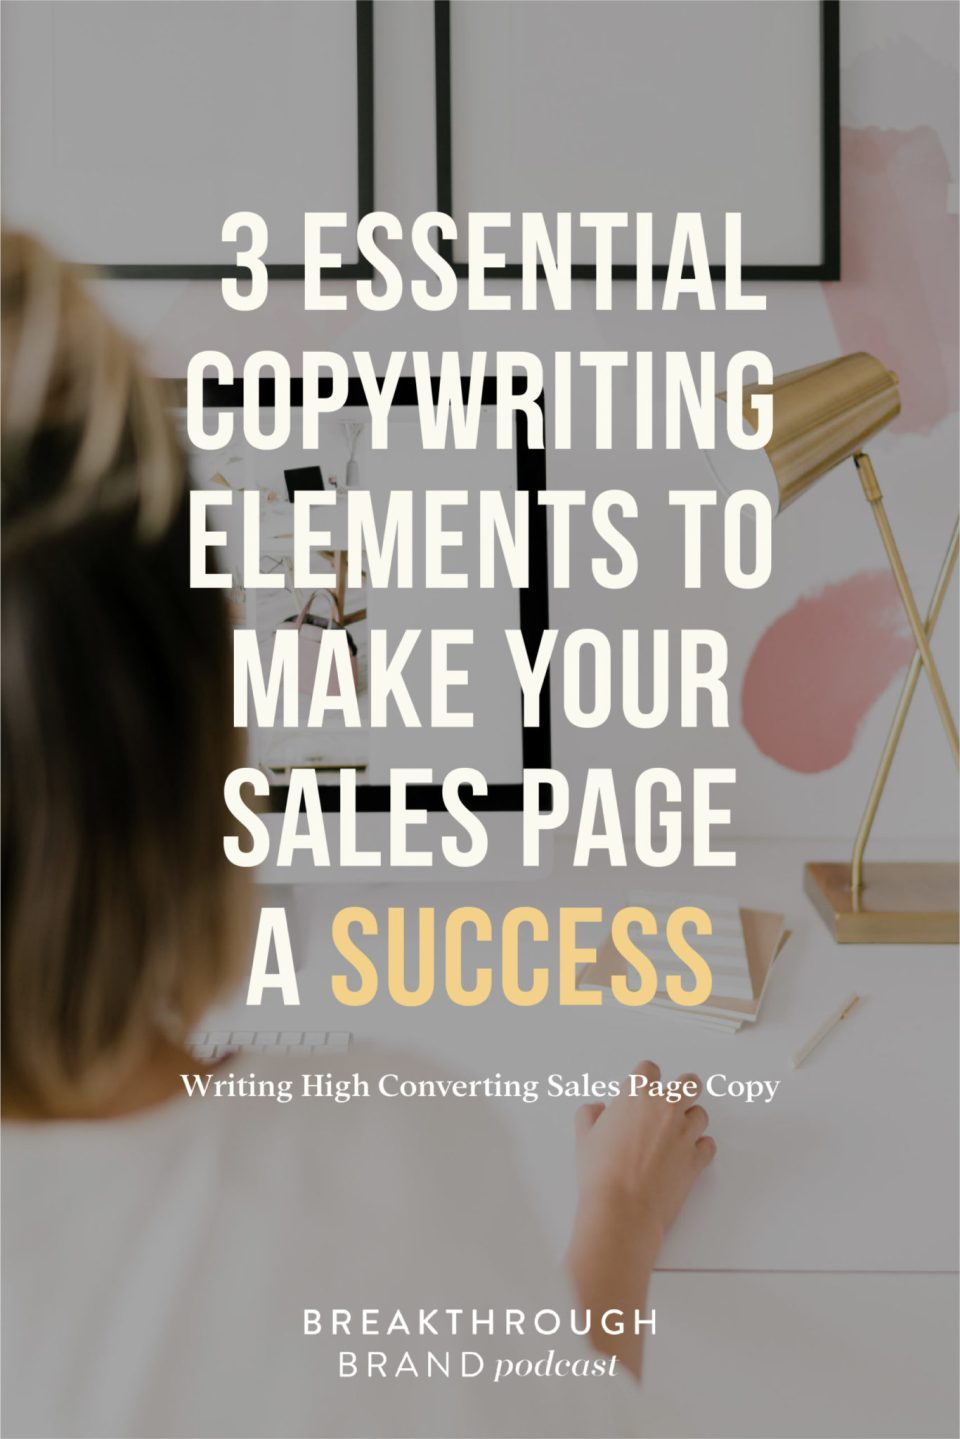 Learn the 3 esscential elements for writing sales page copy the converts on the Breakthrough Brand Podcast.